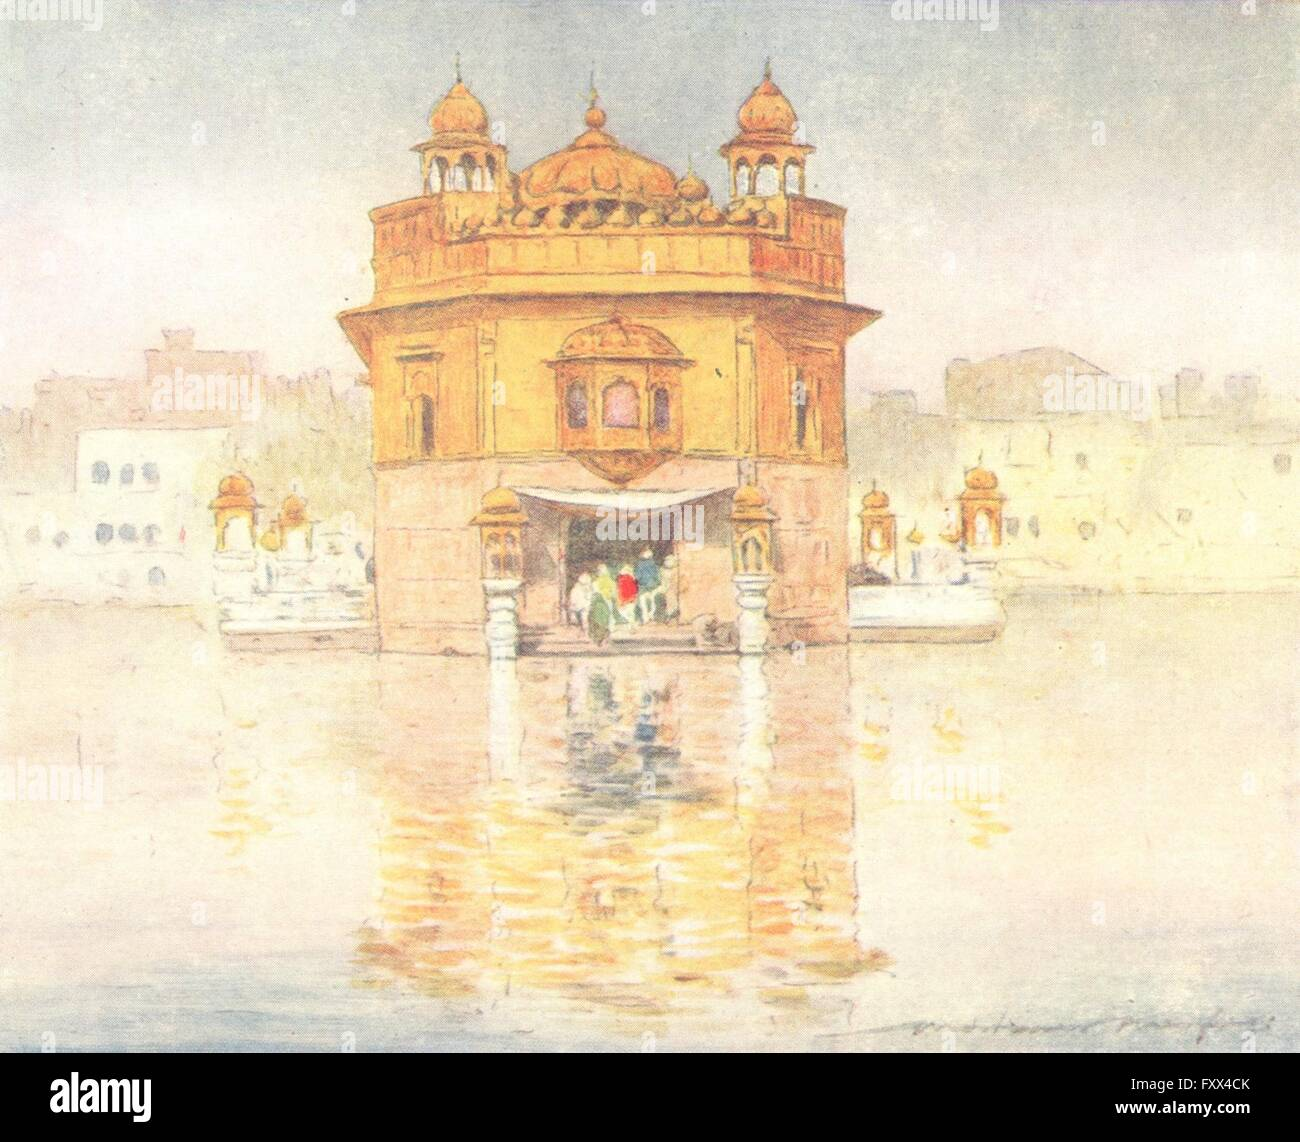 INDIA: Golden temple, Amritsar, antique print 1905 Stock